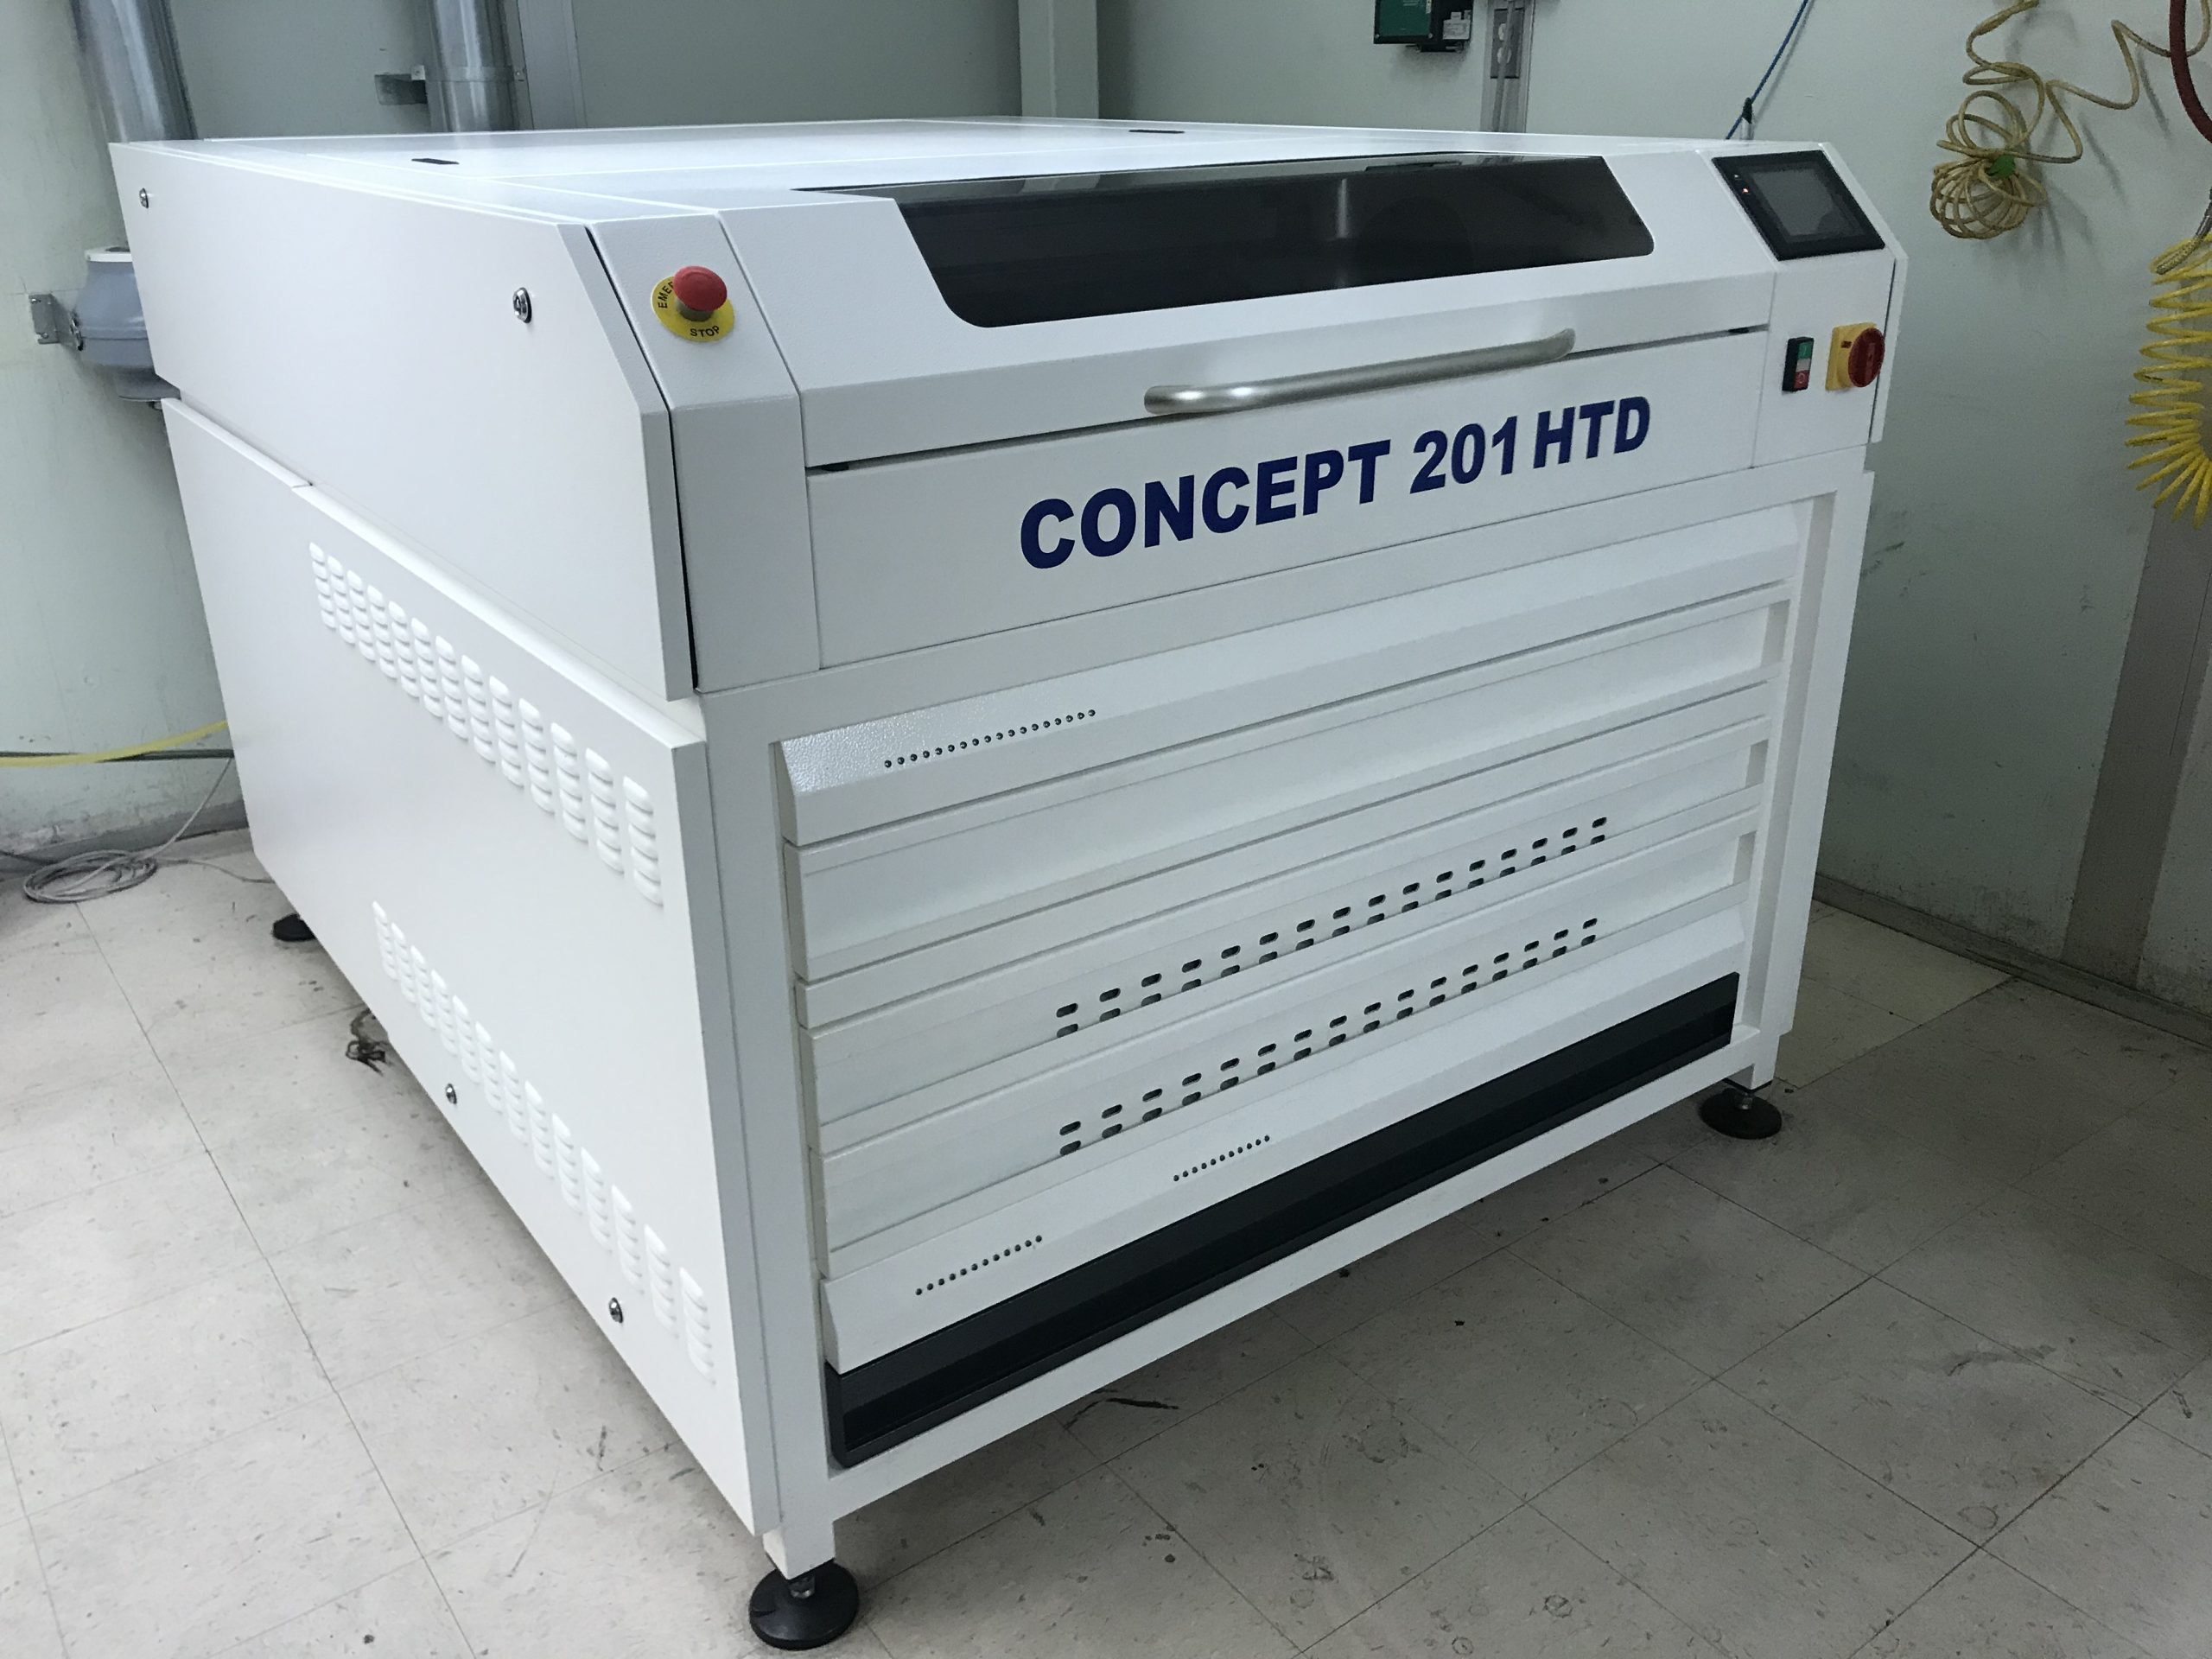 Degraf Concept 201 HTD - Used Flexo Printing Presses and Used Flexographic Equipment-0